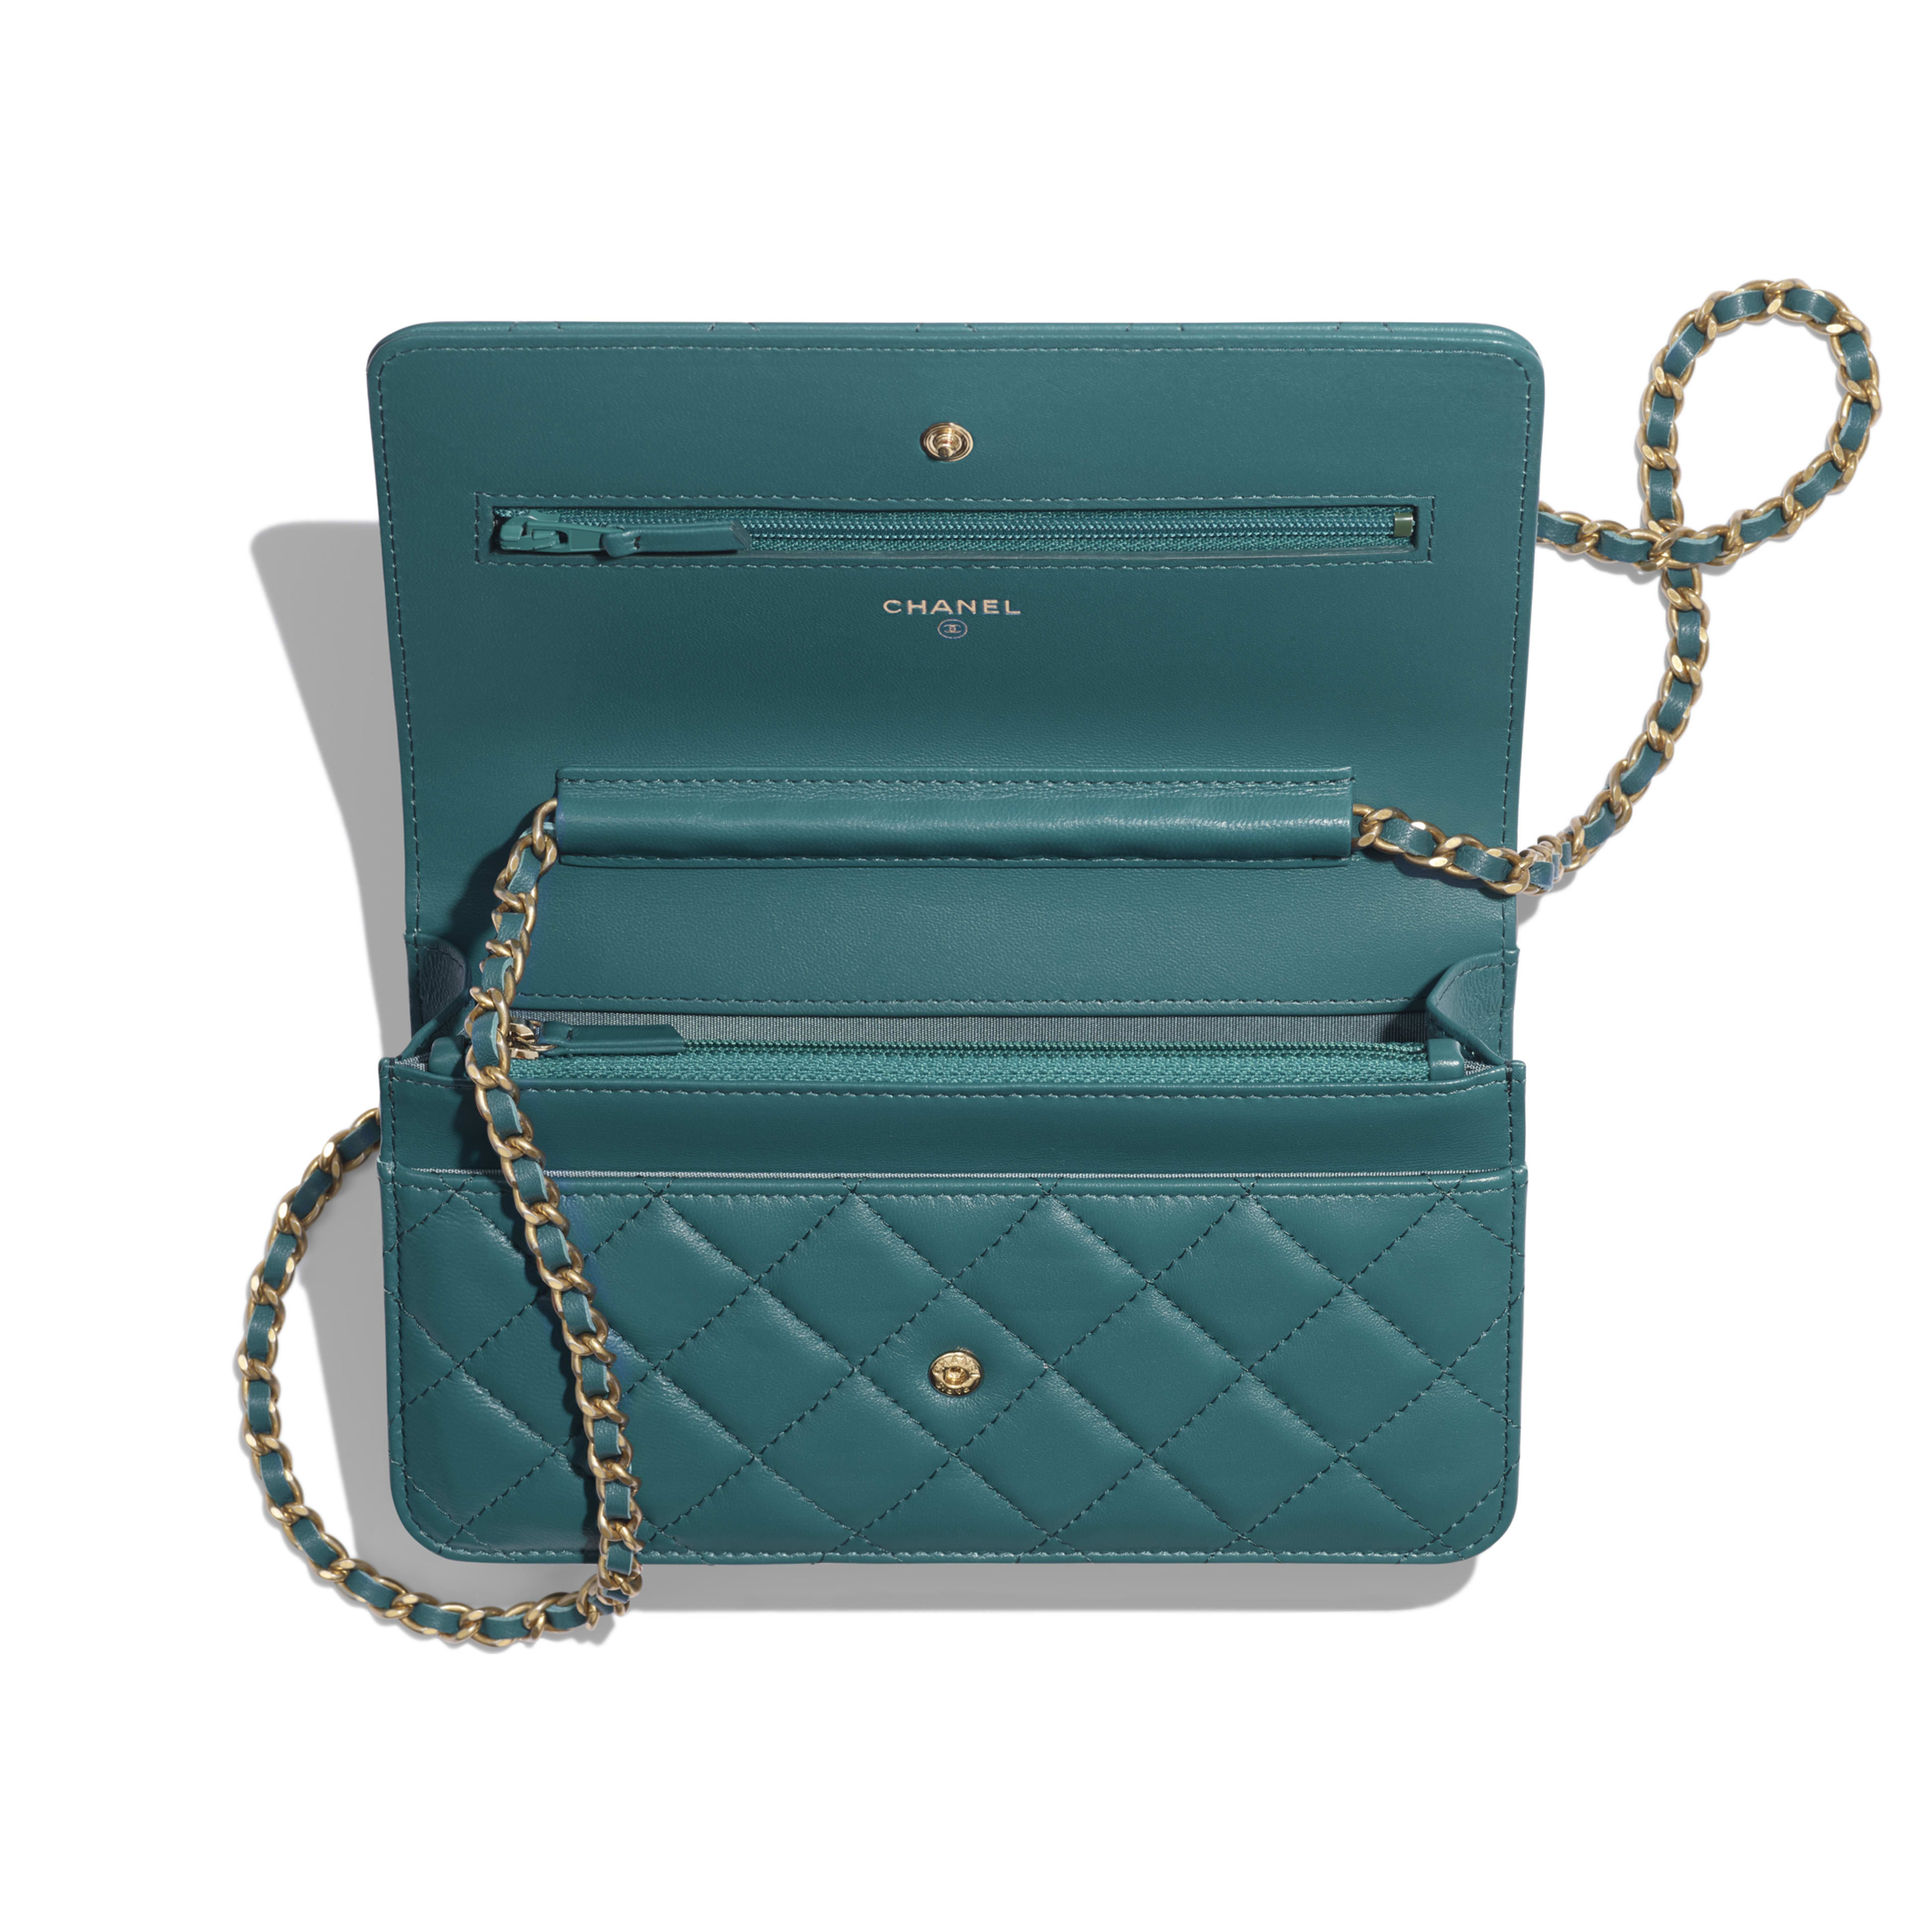 Wallet on Chain - Dark Turquoise - Lambskin & Gold-Tone Metal - Other view - see full sized version